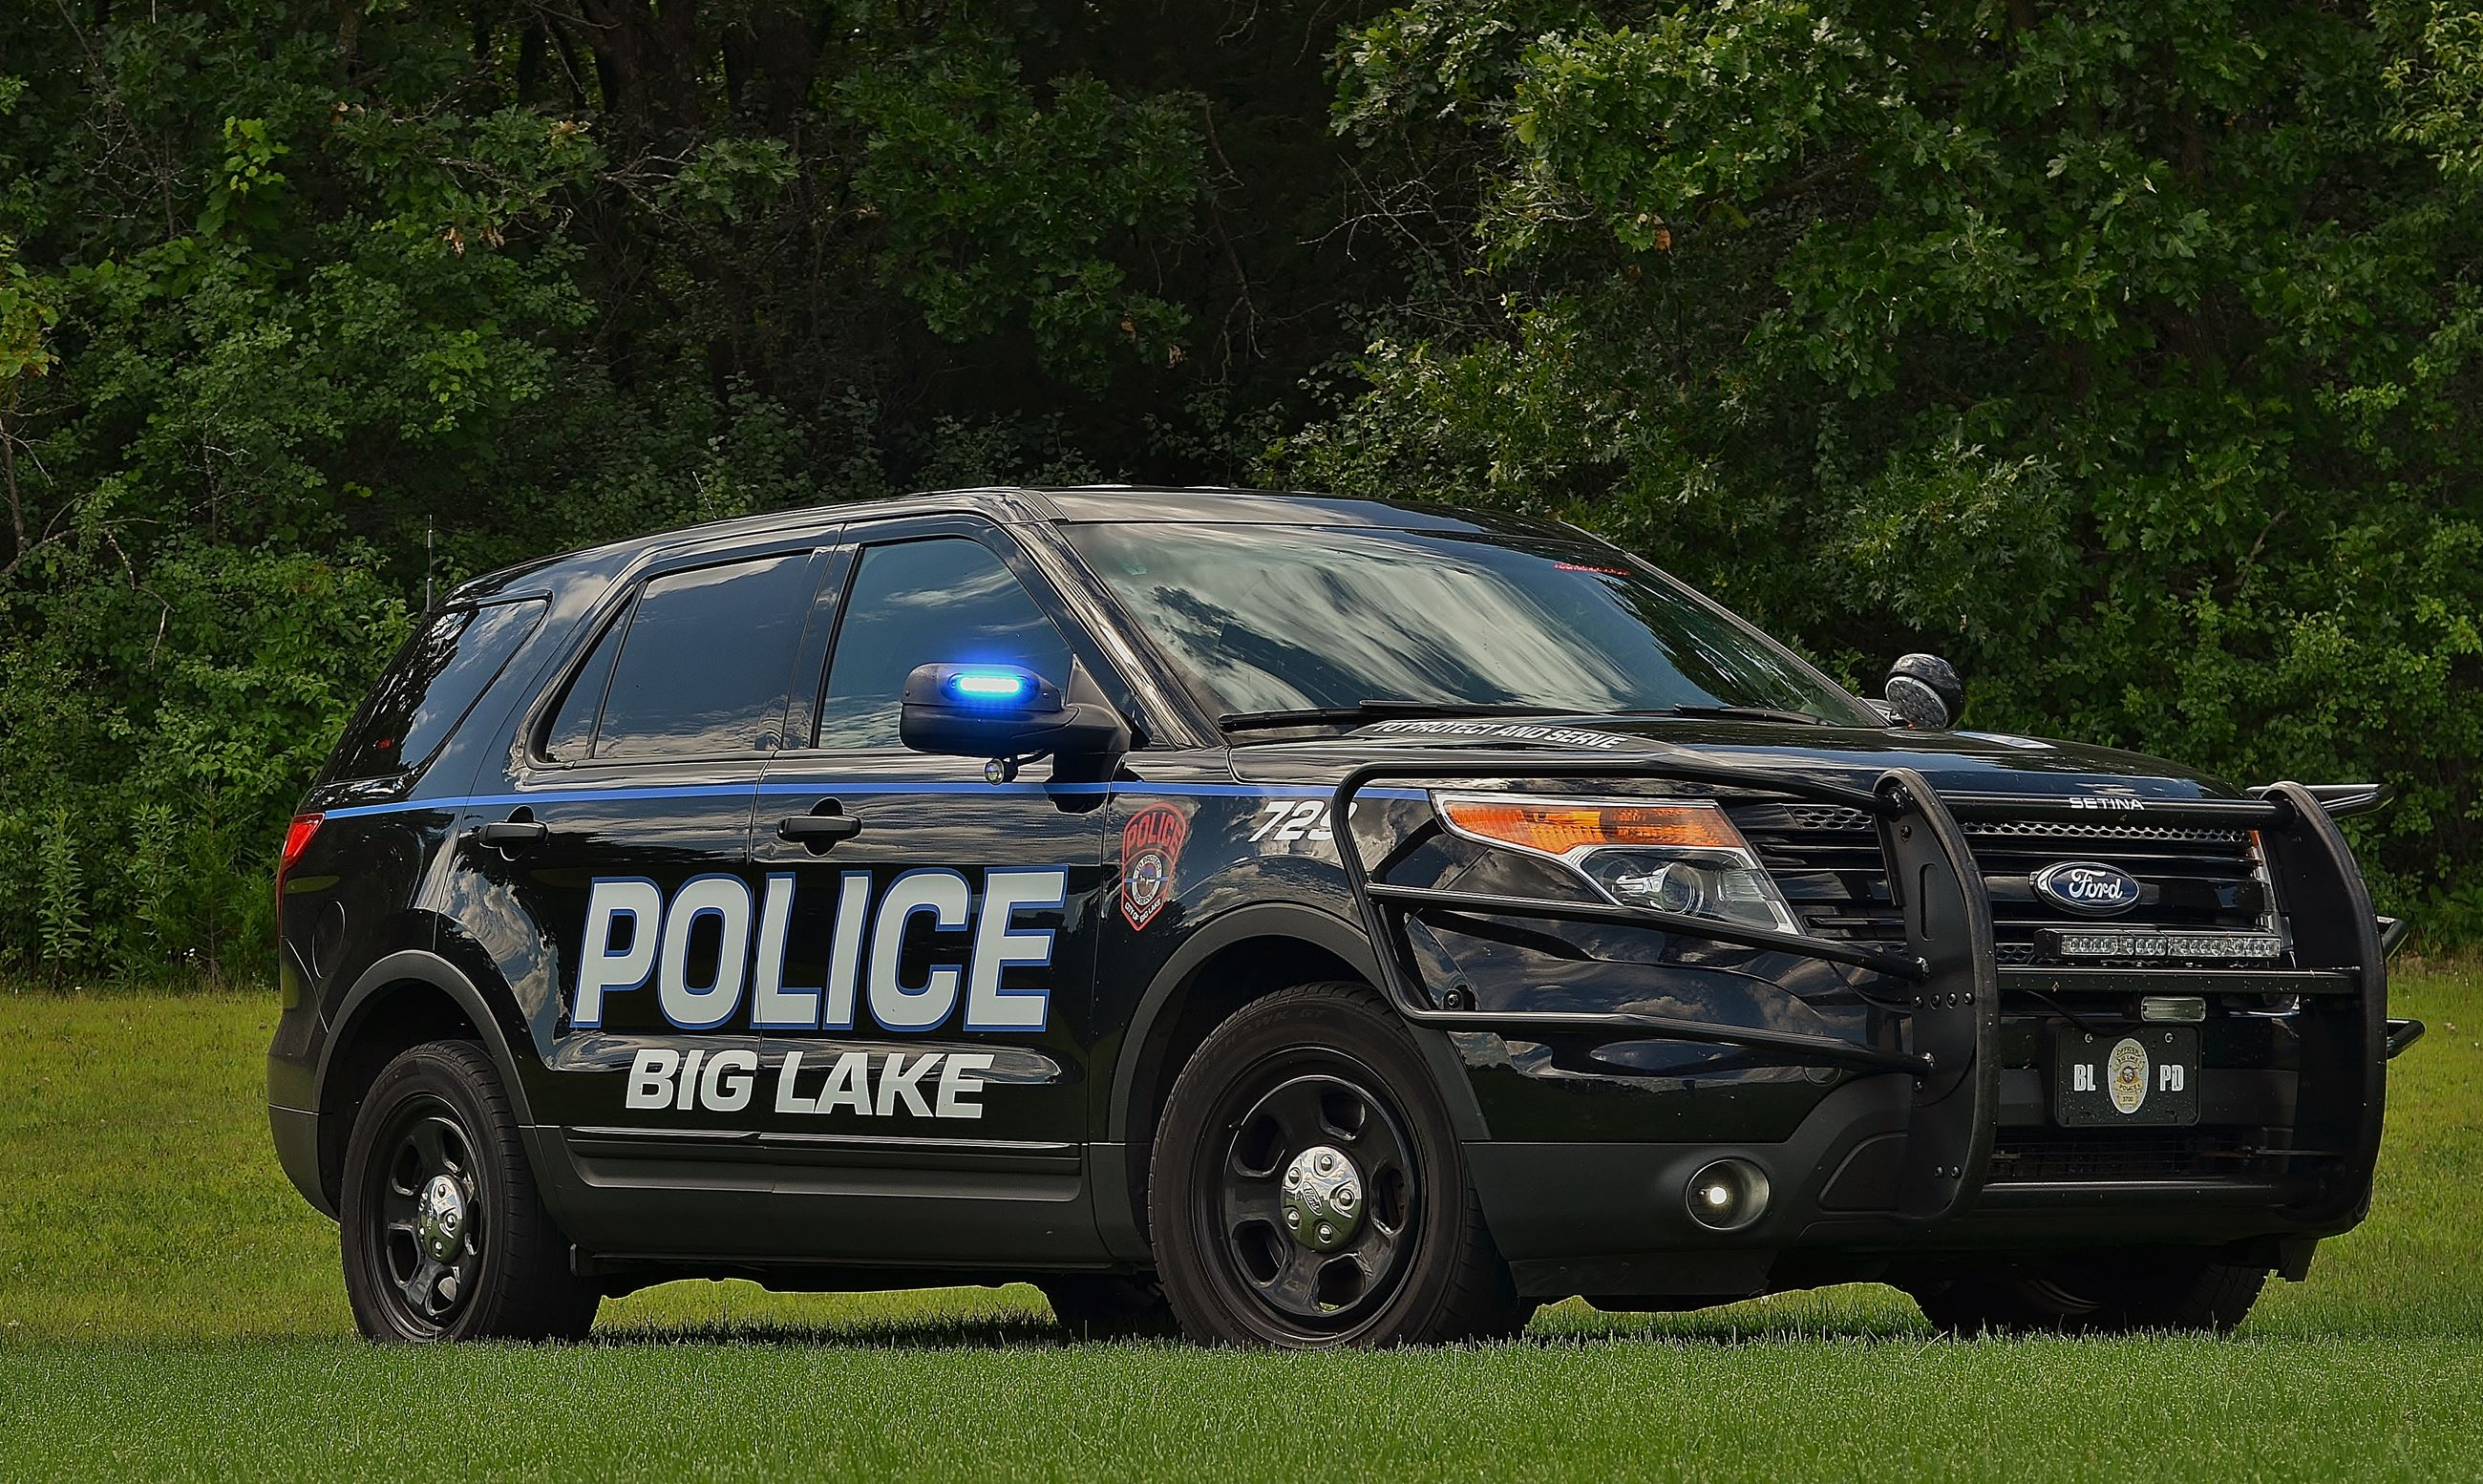 Police Car by a Lake 6